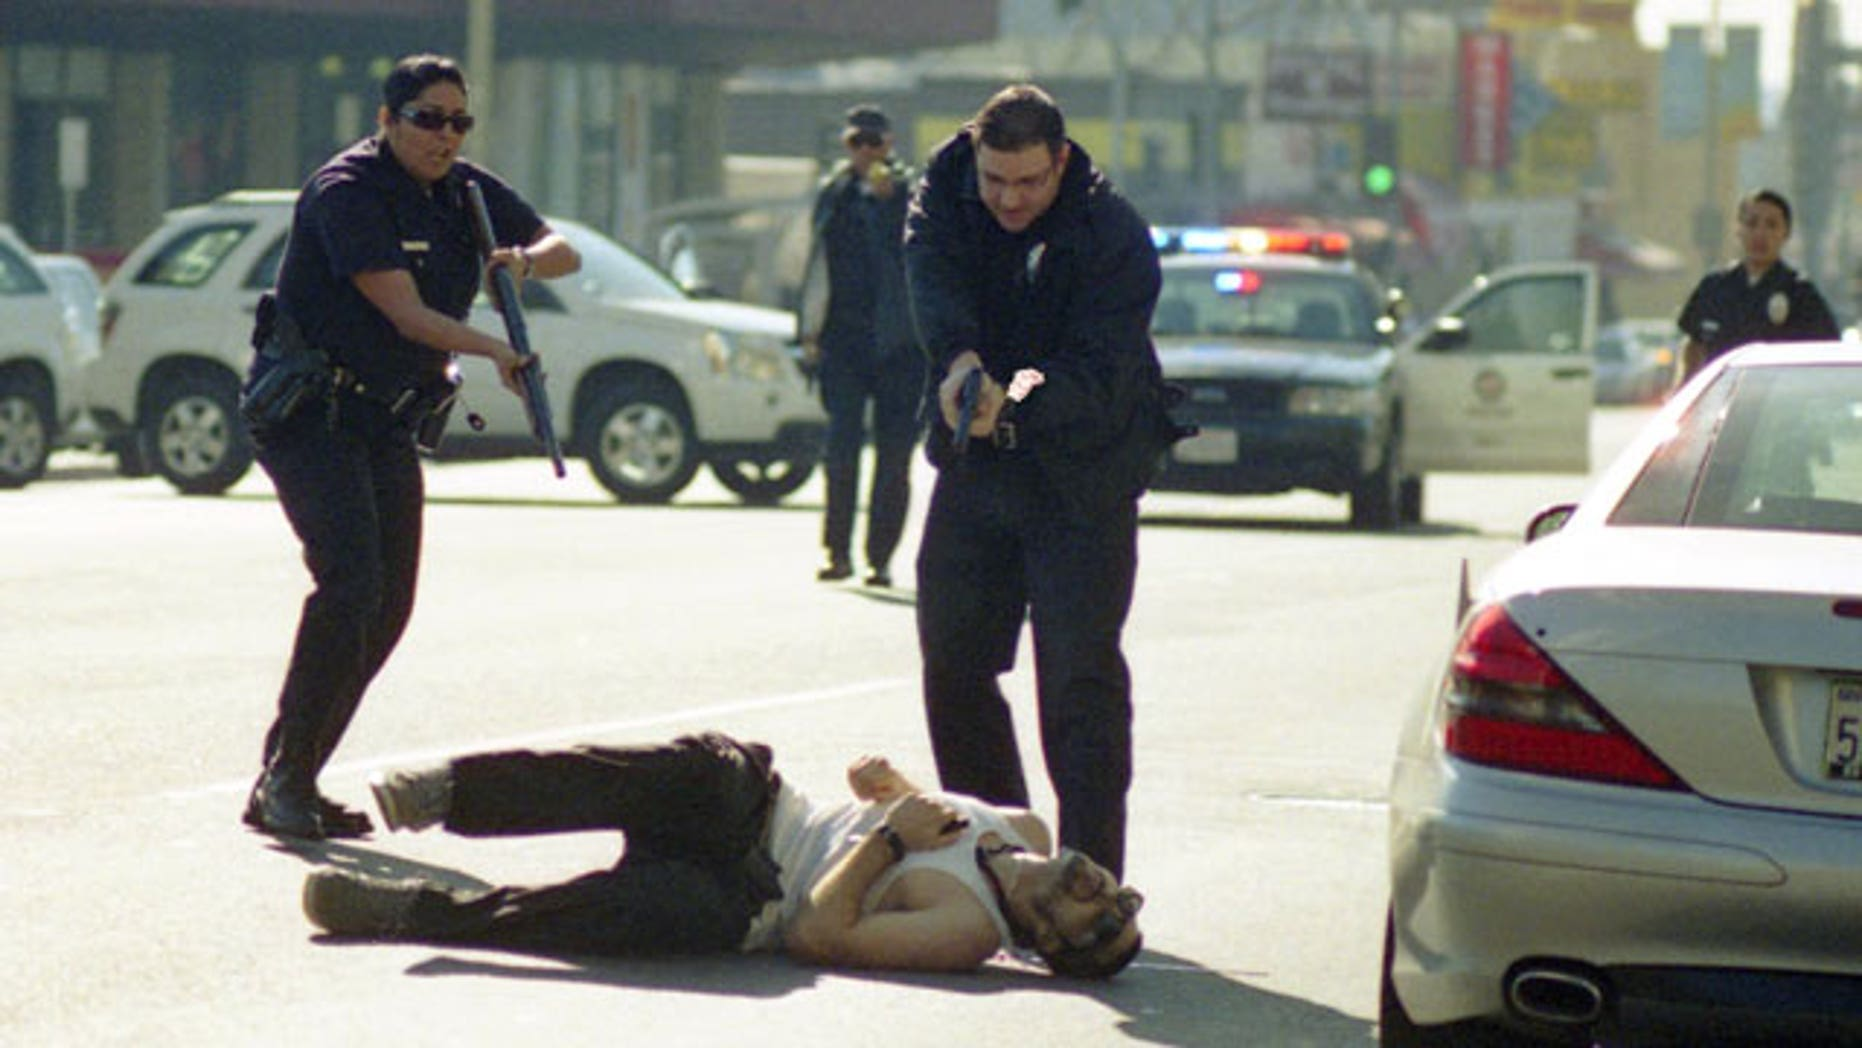 December 9, 2011: This image provided by Gregory Bojorquez shows Los Angeles Police officers advancing on a wounded gunman at sunset and Vine streets in Los Angeles.